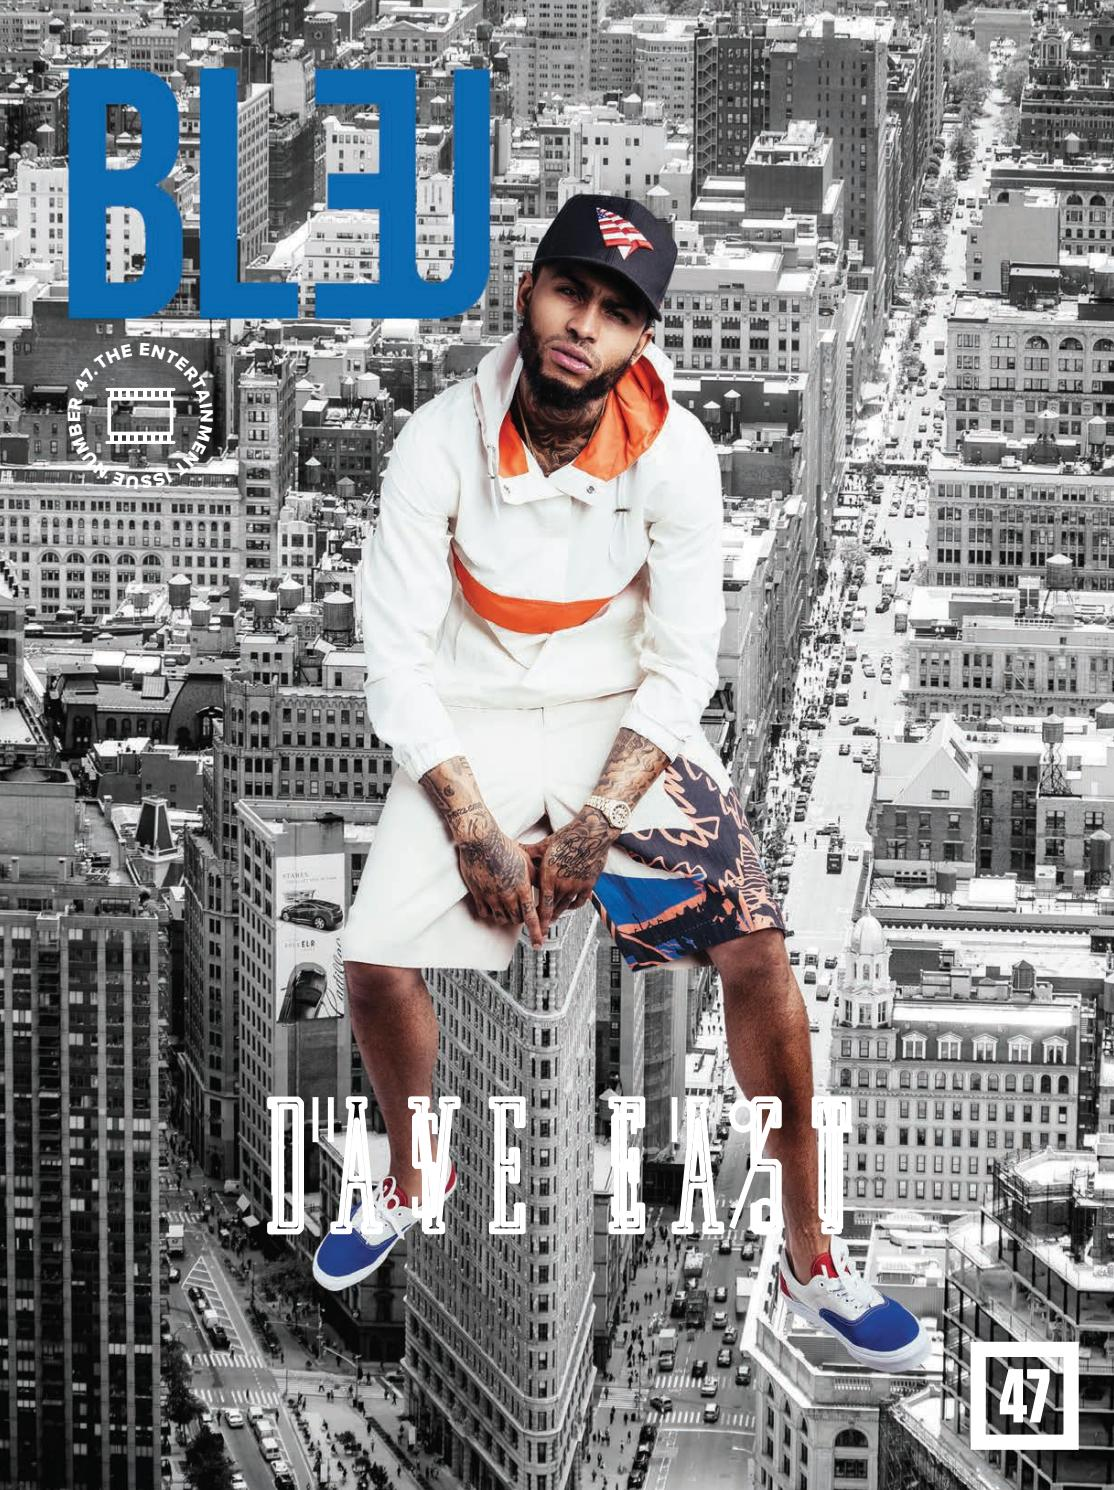 Bleu Magazine Issue 47 - Dave East by Bleu Magazine - issuu